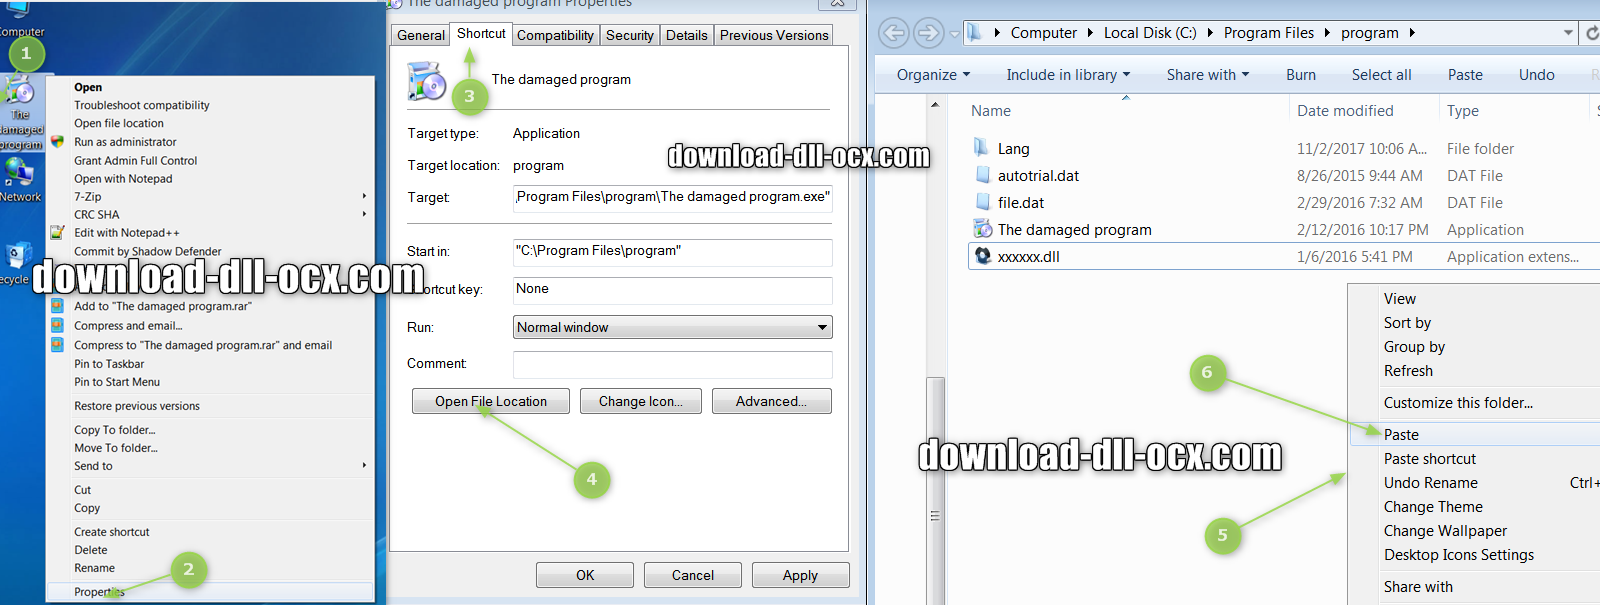 how to install lifestudioheadapi.dll file? for fix missing